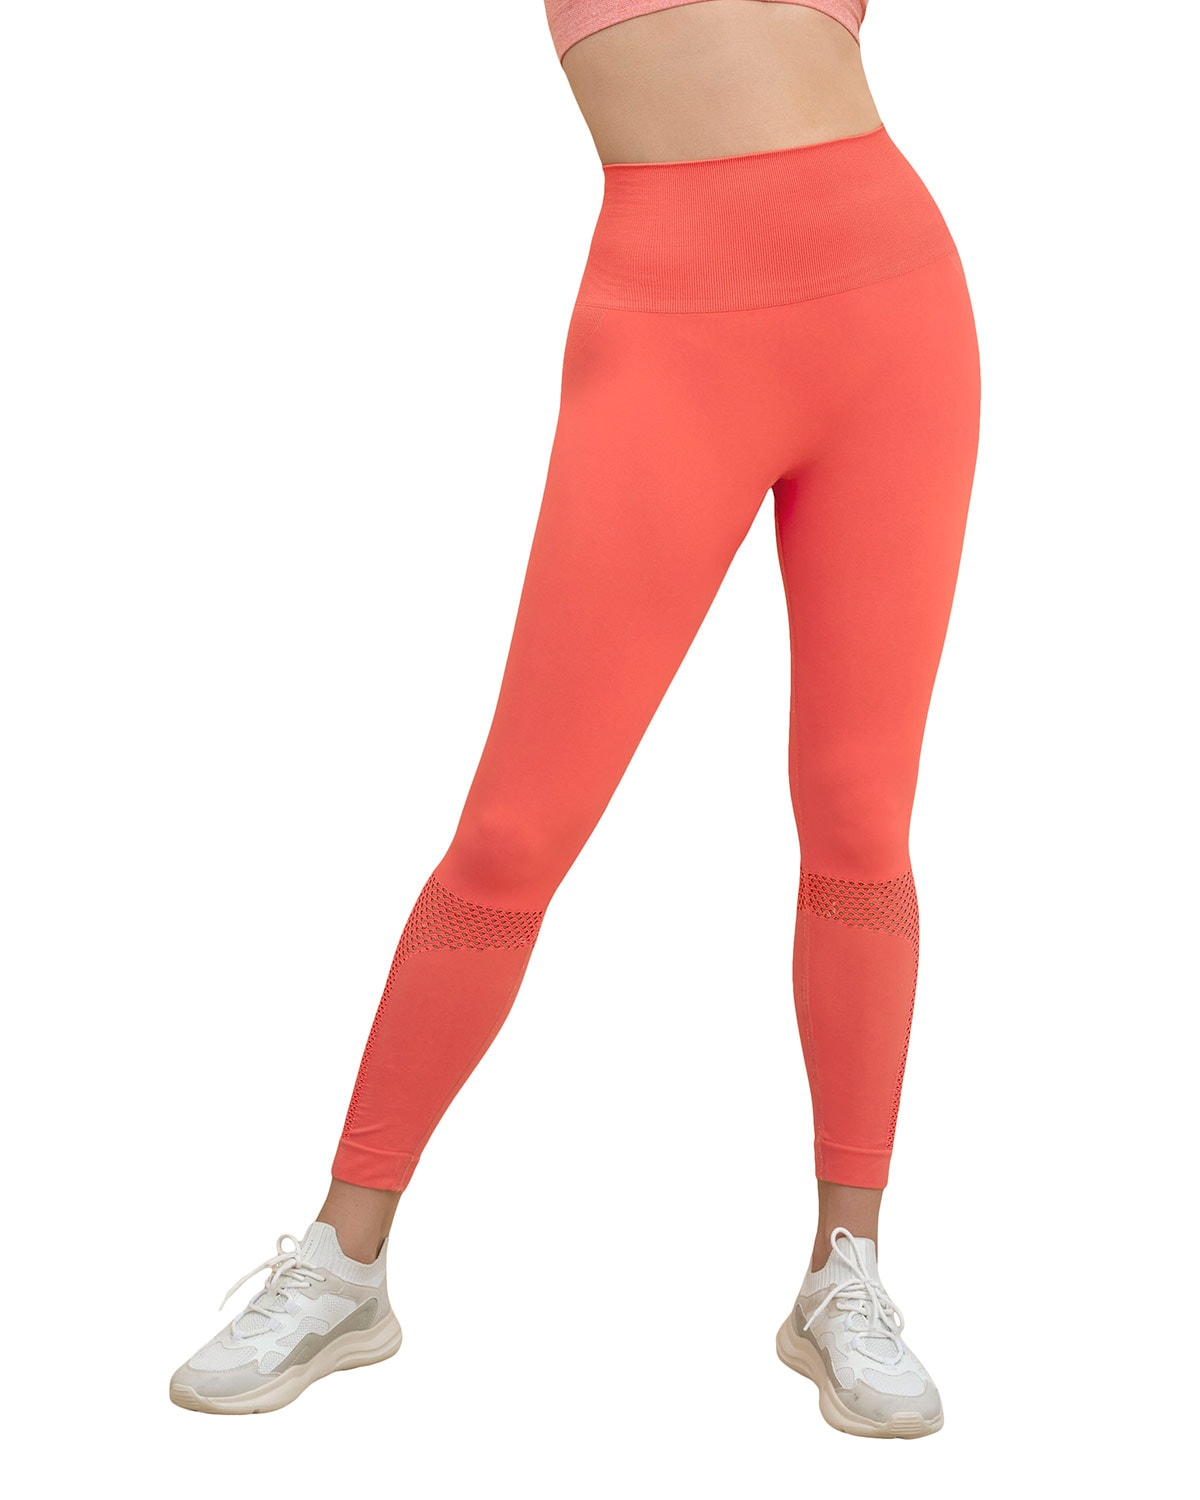 High Waisted Legging with Double-Layered Waistband and Breathable Mesh Cutouts